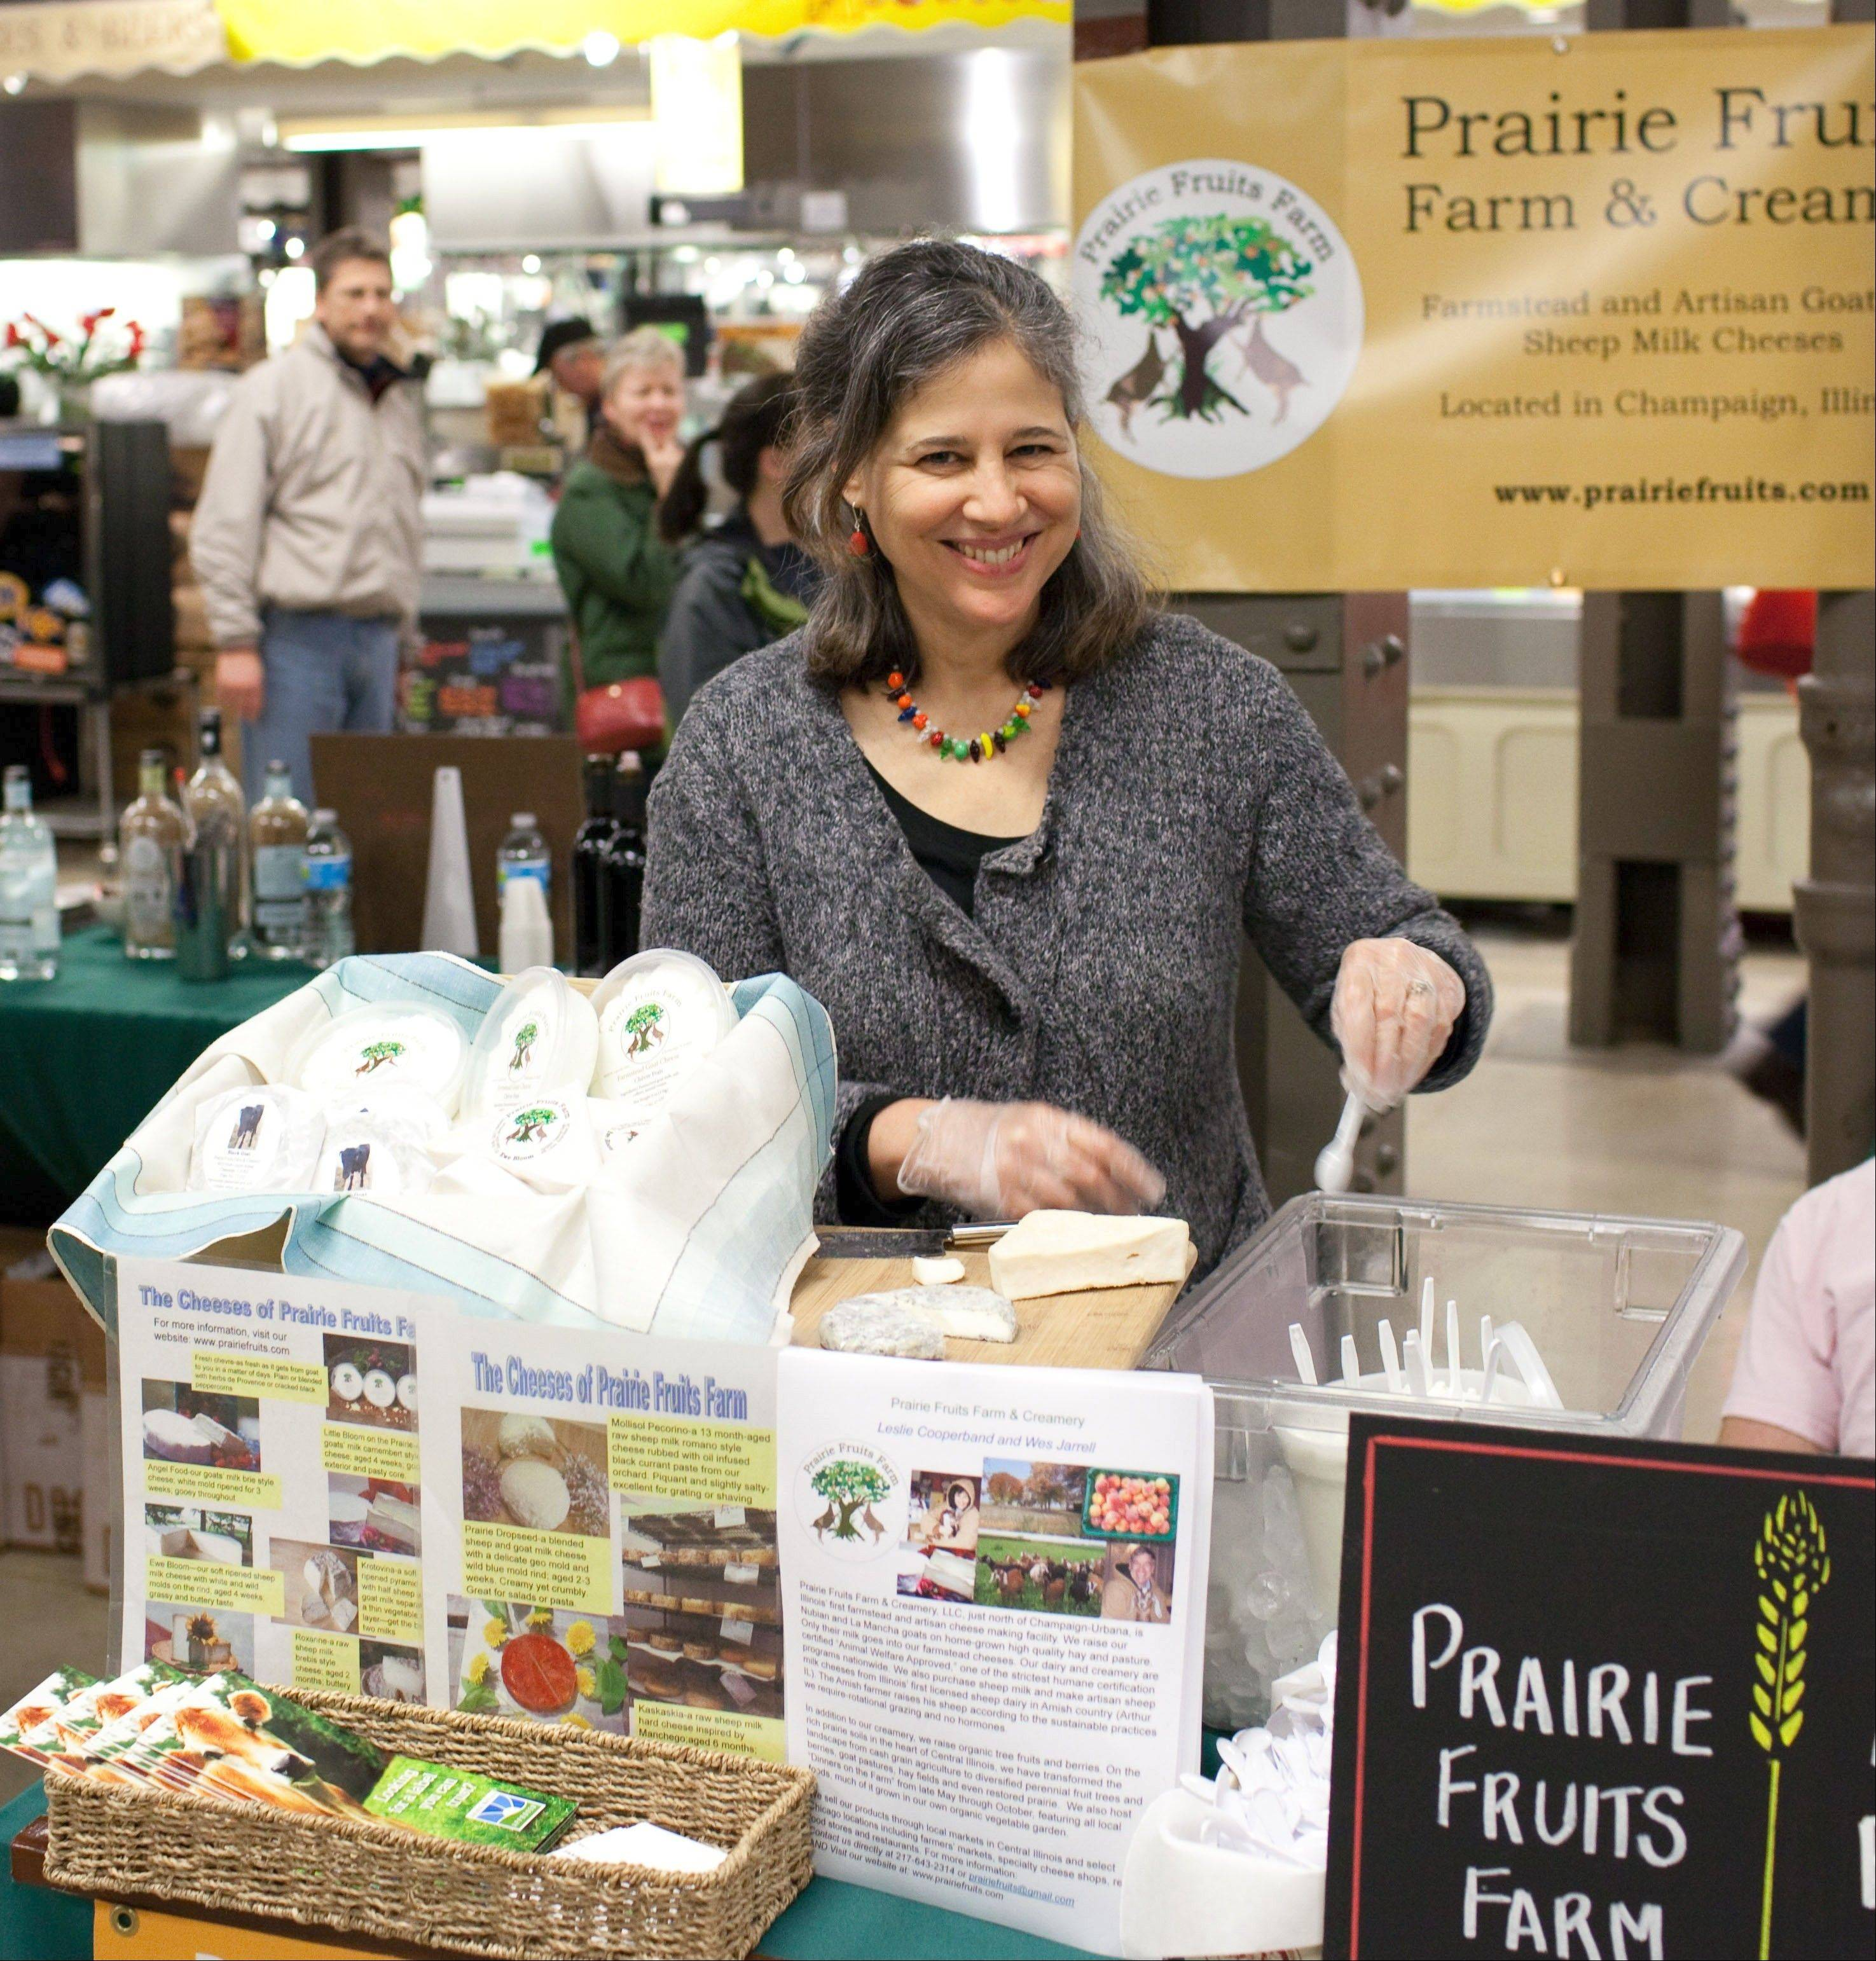 Cheesemaker Leslie Cooperband of Prairie Fruits Farm will be part of the Pastoral's Artisan Producer Festival Saturday, April 27.